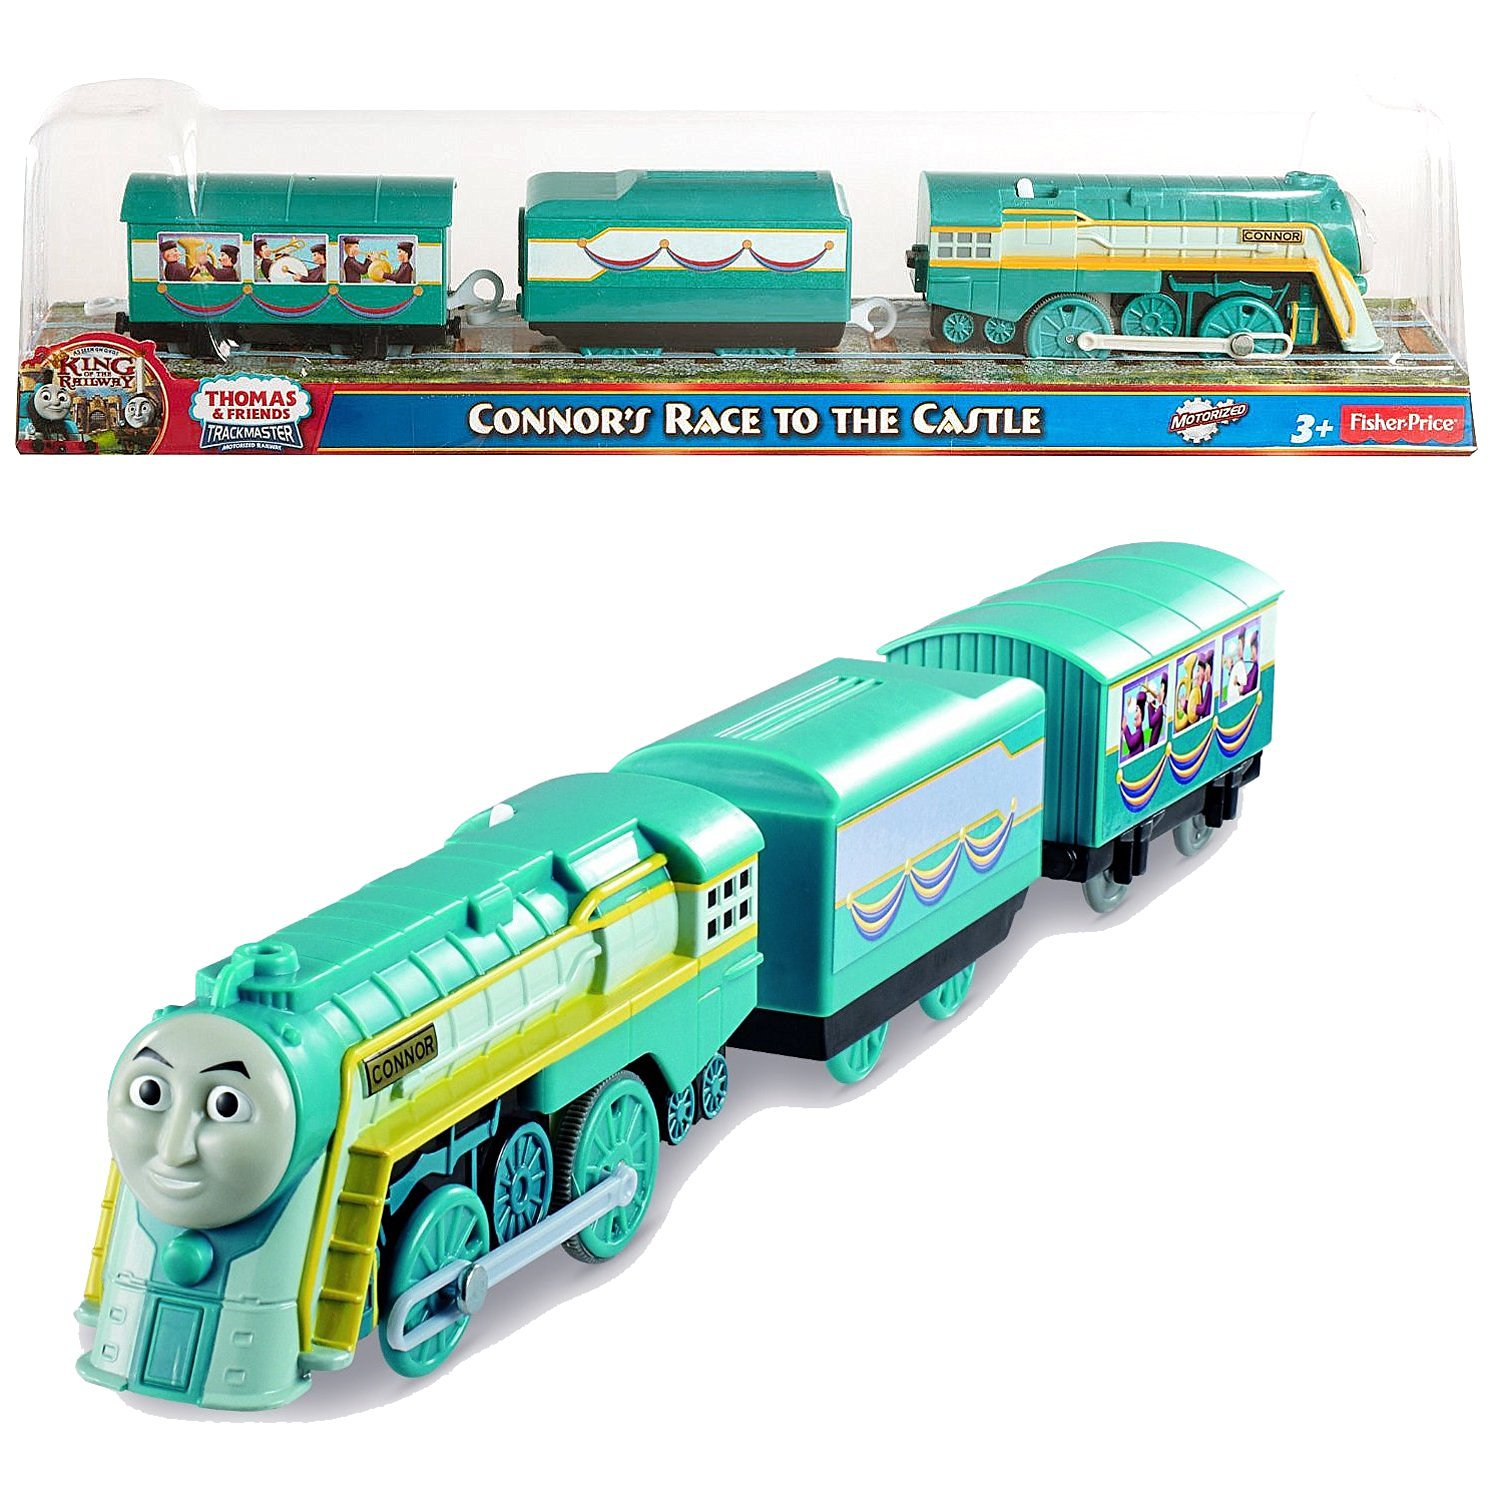 Fisher Price Year 2013 Thomas and Friends As Seen On King of the Railway DVD Series Trackmaster Motorized Railway Battery Powered Tank Engine 3 Pack Train Set - CONNORS RACE TO THE CASTLE with 1 Cargo Car and 1 Passenger Car